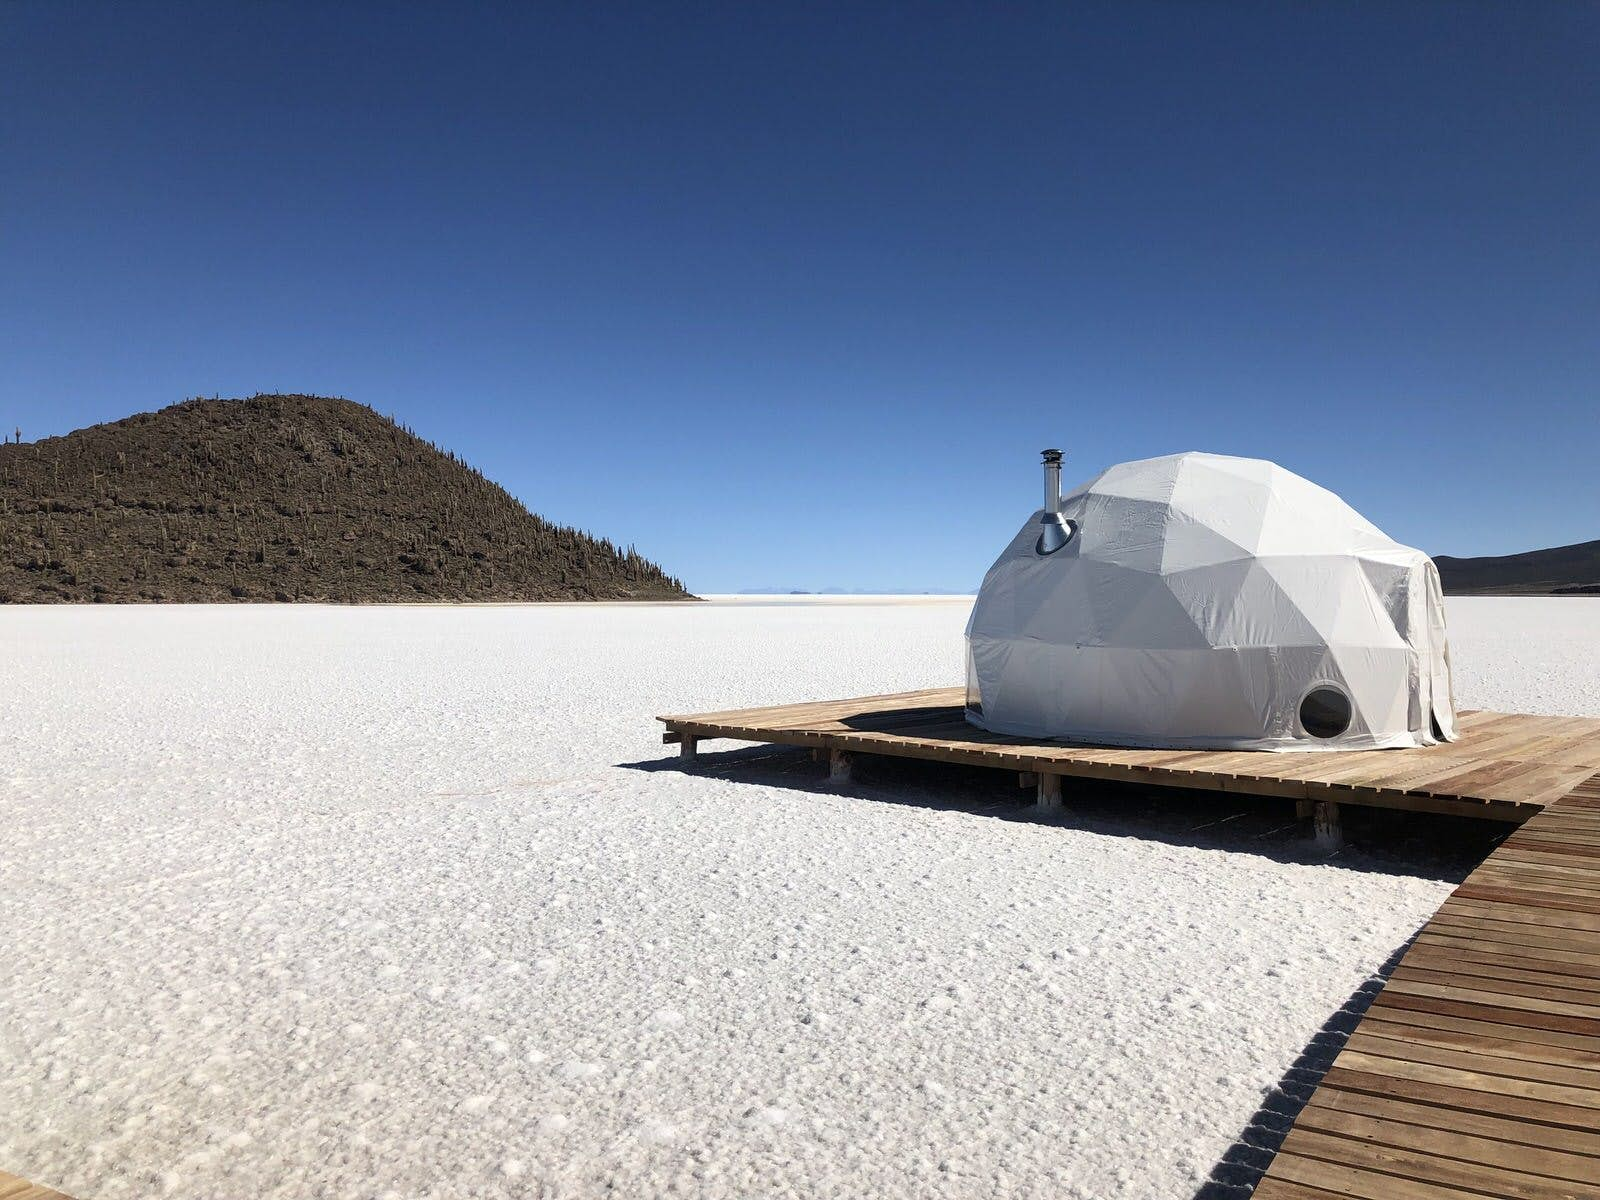 A white geodesic domed tent with a silver chimney sits on a raised wooden platform, which seemingly hovers over white salt flats; in the semi-distance is a forested hill rising from the flats, much like an island